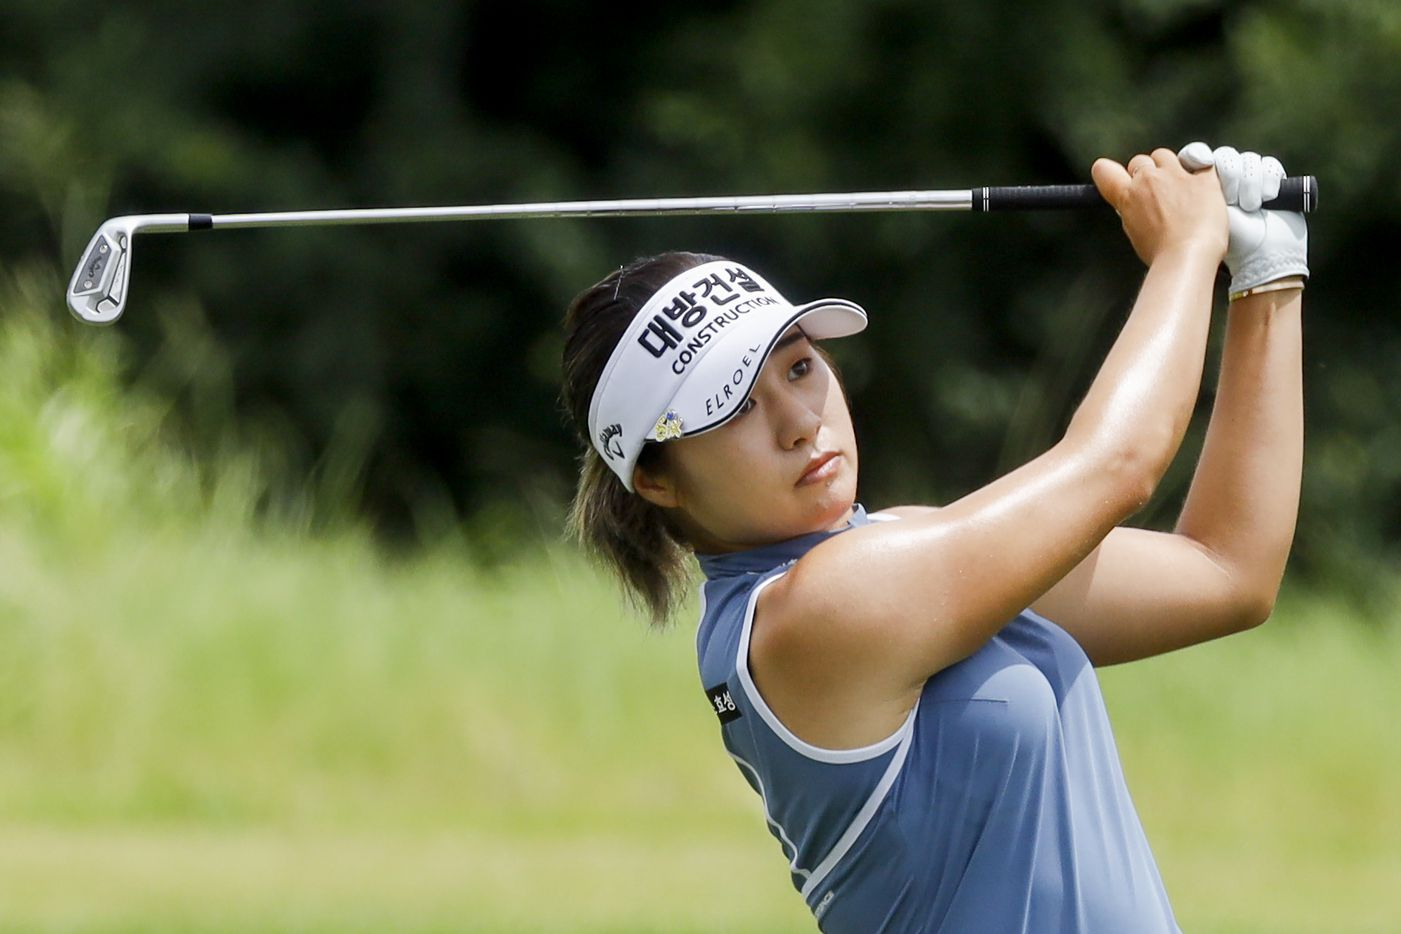 Professional golfer Jeongeun Lee6 watches her ball on the No. 9 fairway during the second round of the LPGA VOA Classic on Friday, July 2, 2021, in The Colony, Texas. (Elias Valverde II/The Dallas Morning News)